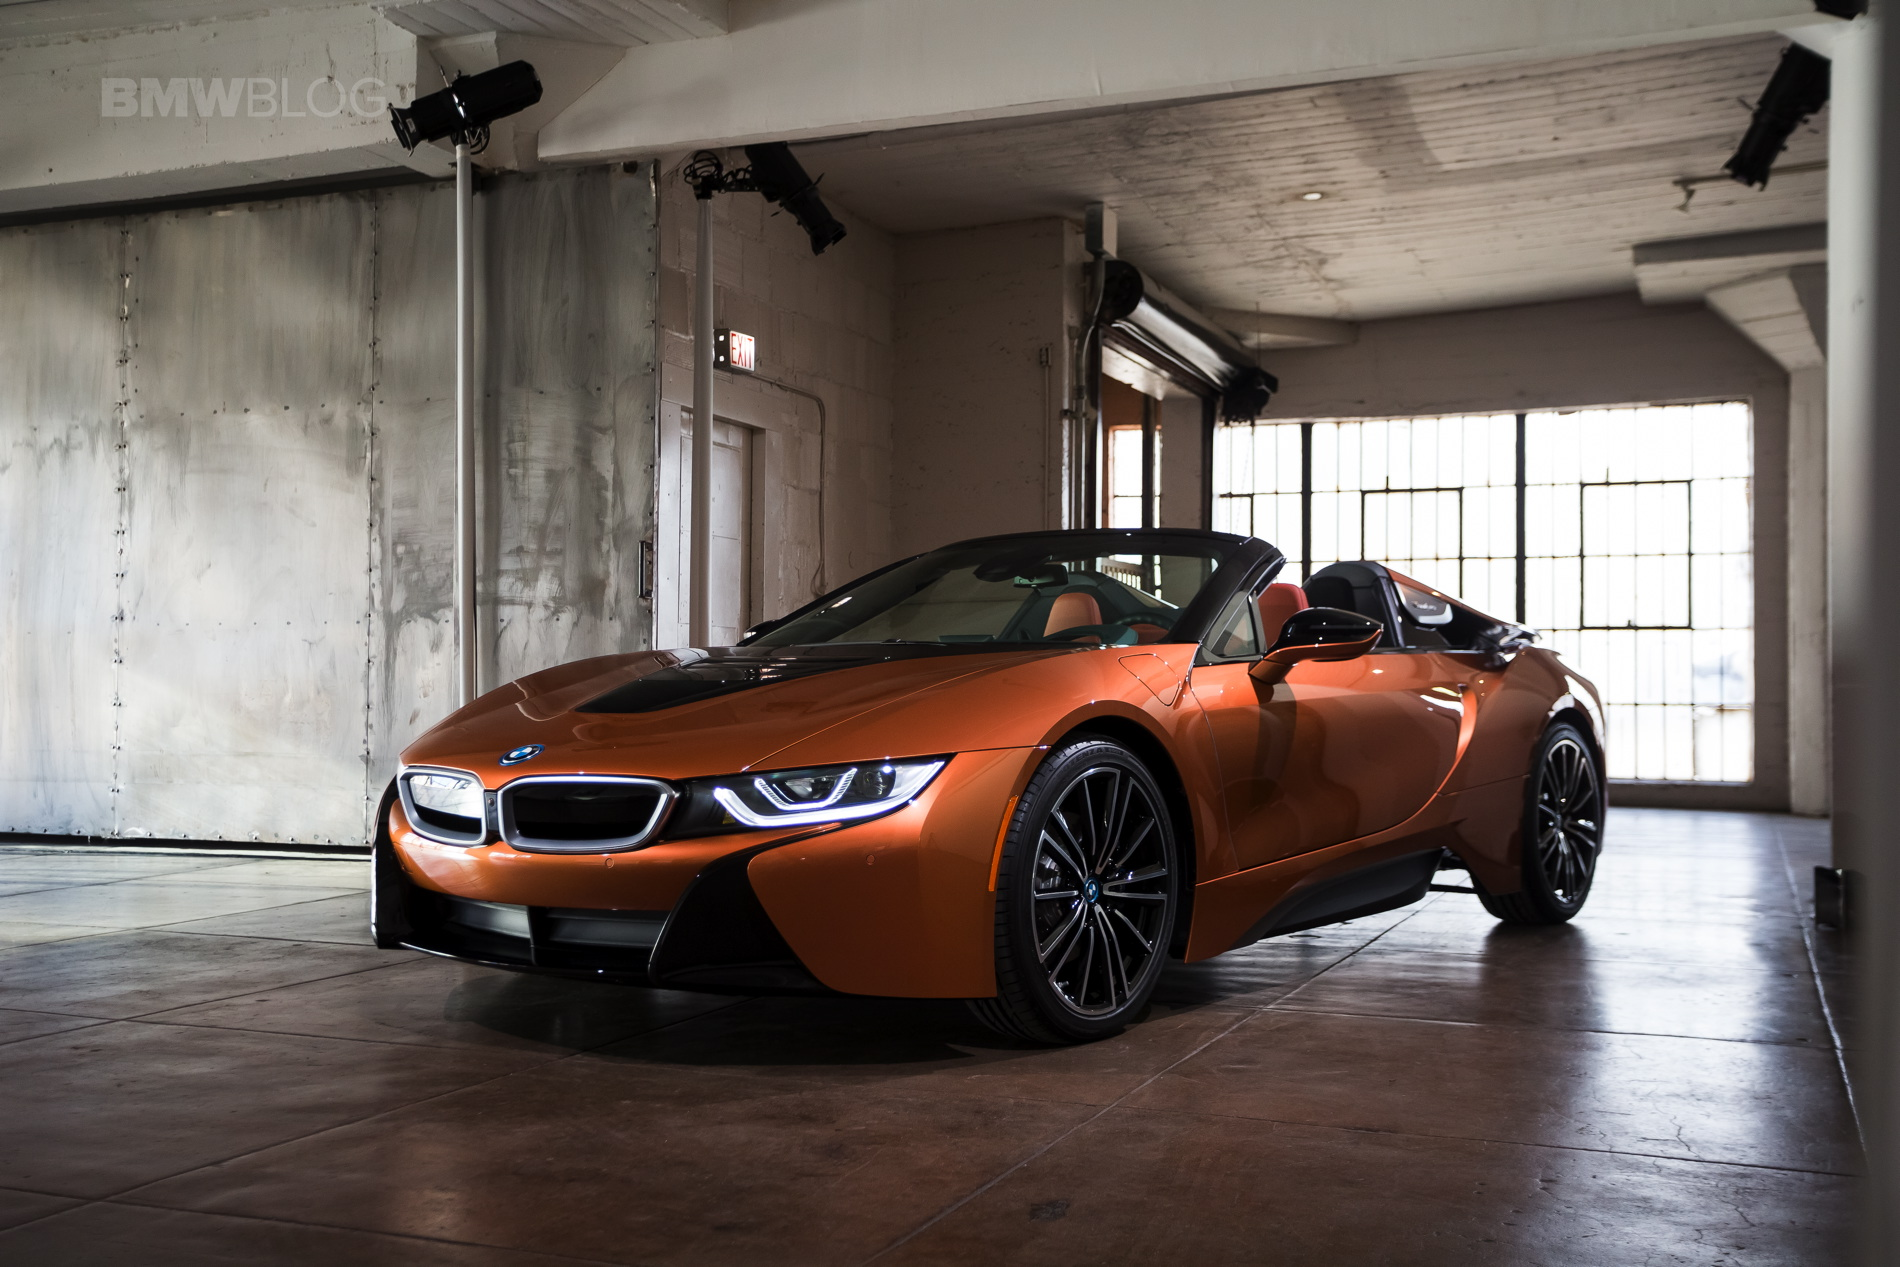 Real Life Photos Of The BMW I8 Roadster